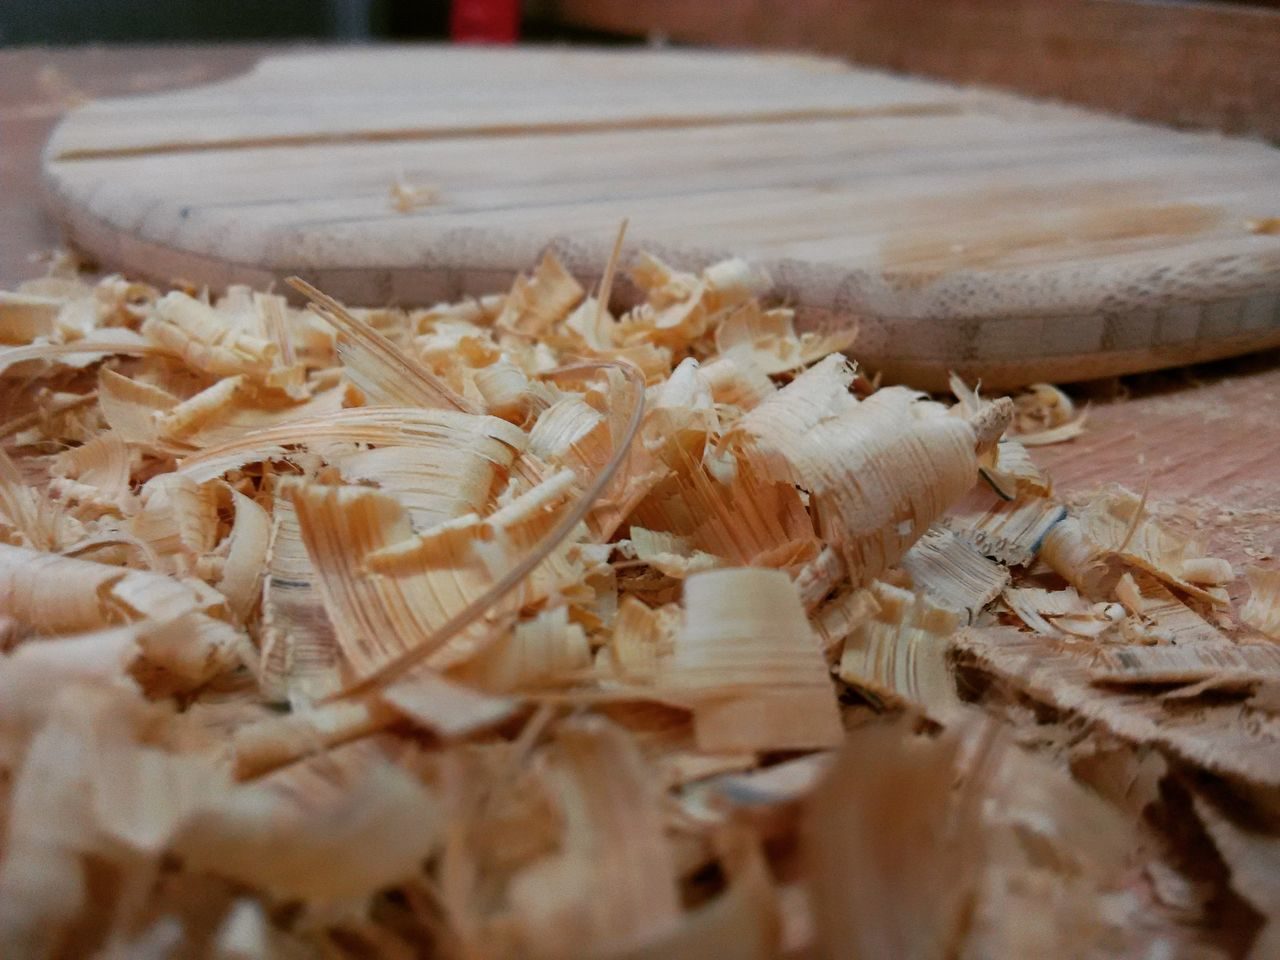 wood - material, no people, food and drink, food, indoors, close-up, day, freshness